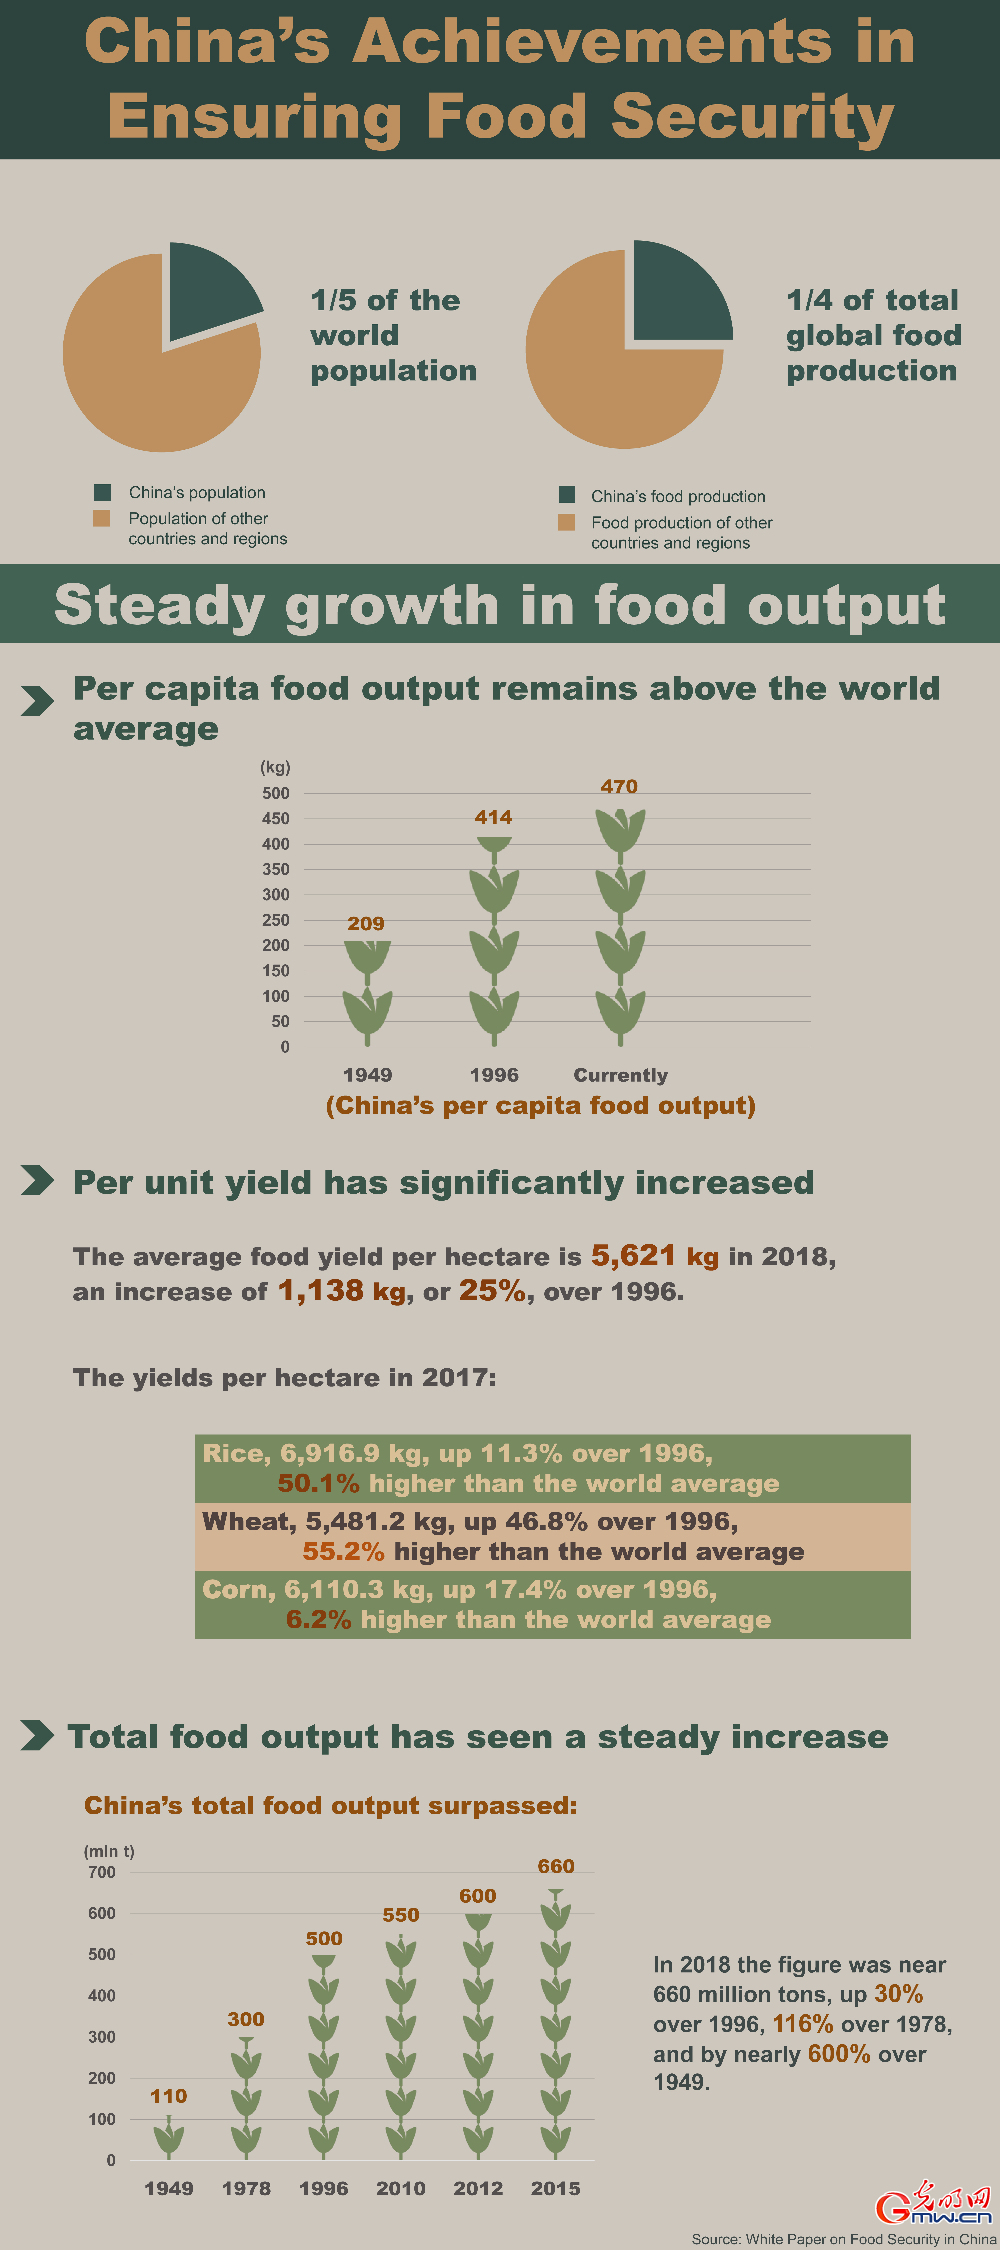 China's achievements in ensuring food security [I]: steady growth in food output